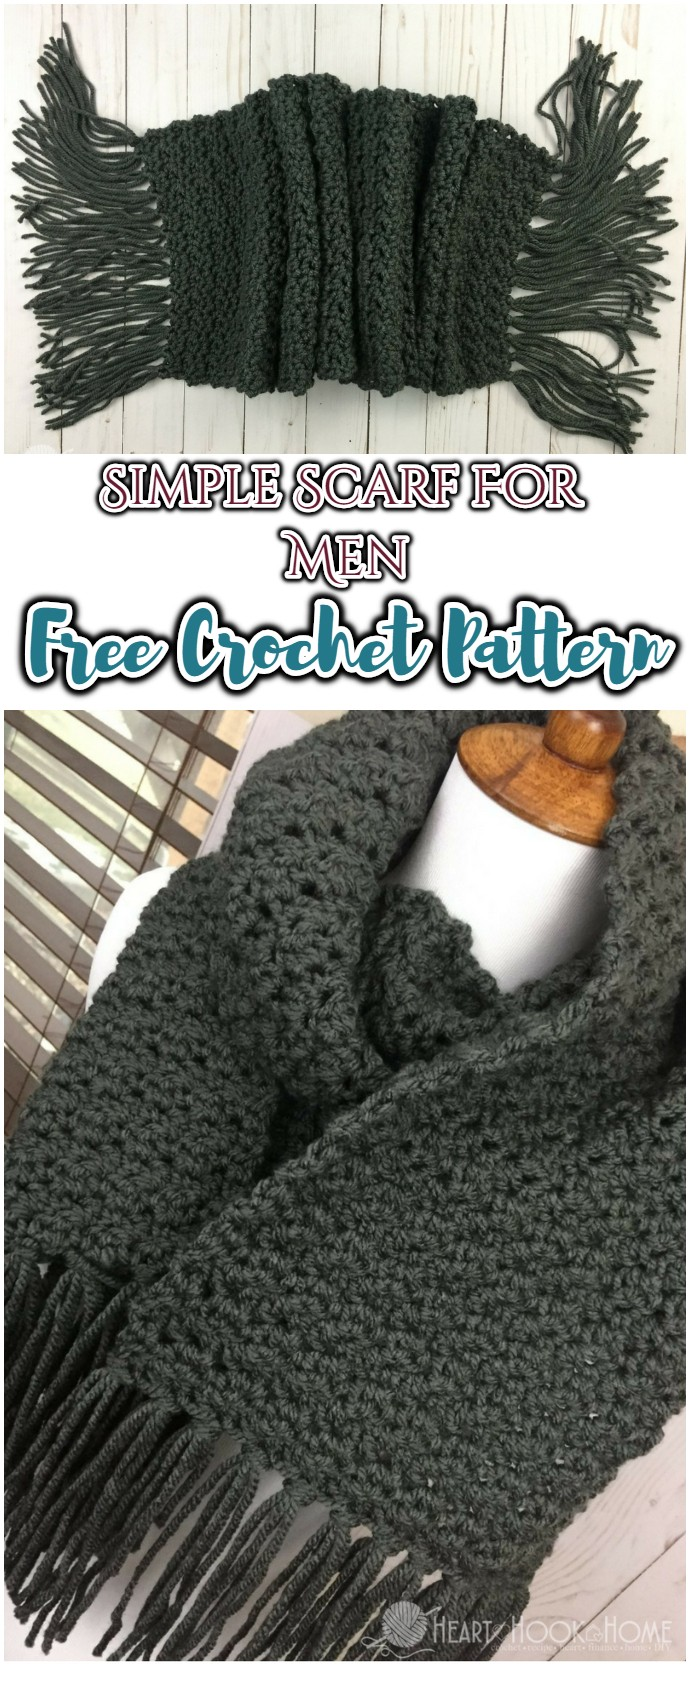 Simple Scarf For Men Free Crochet Pattern